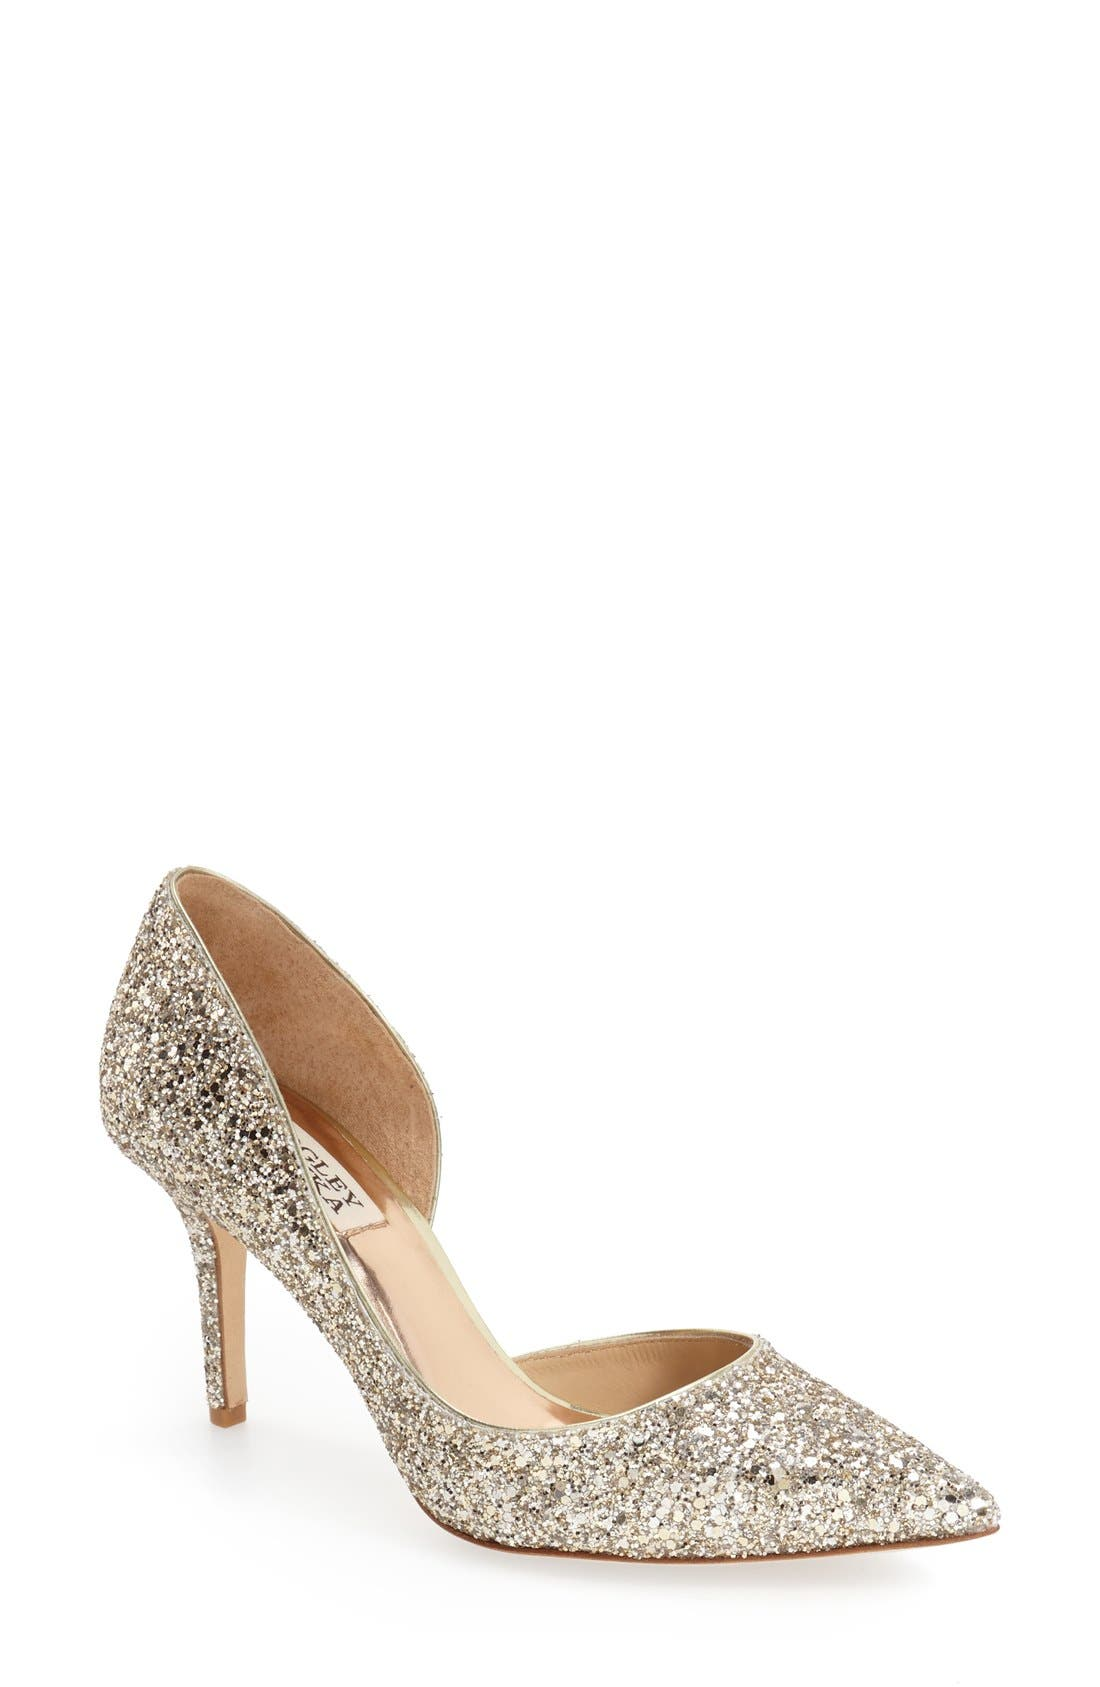 'Daisy' Embellished Pointy Toe Pump,                             Main thumbnail 1, color,                             PLATINO GLITTER FABRIC